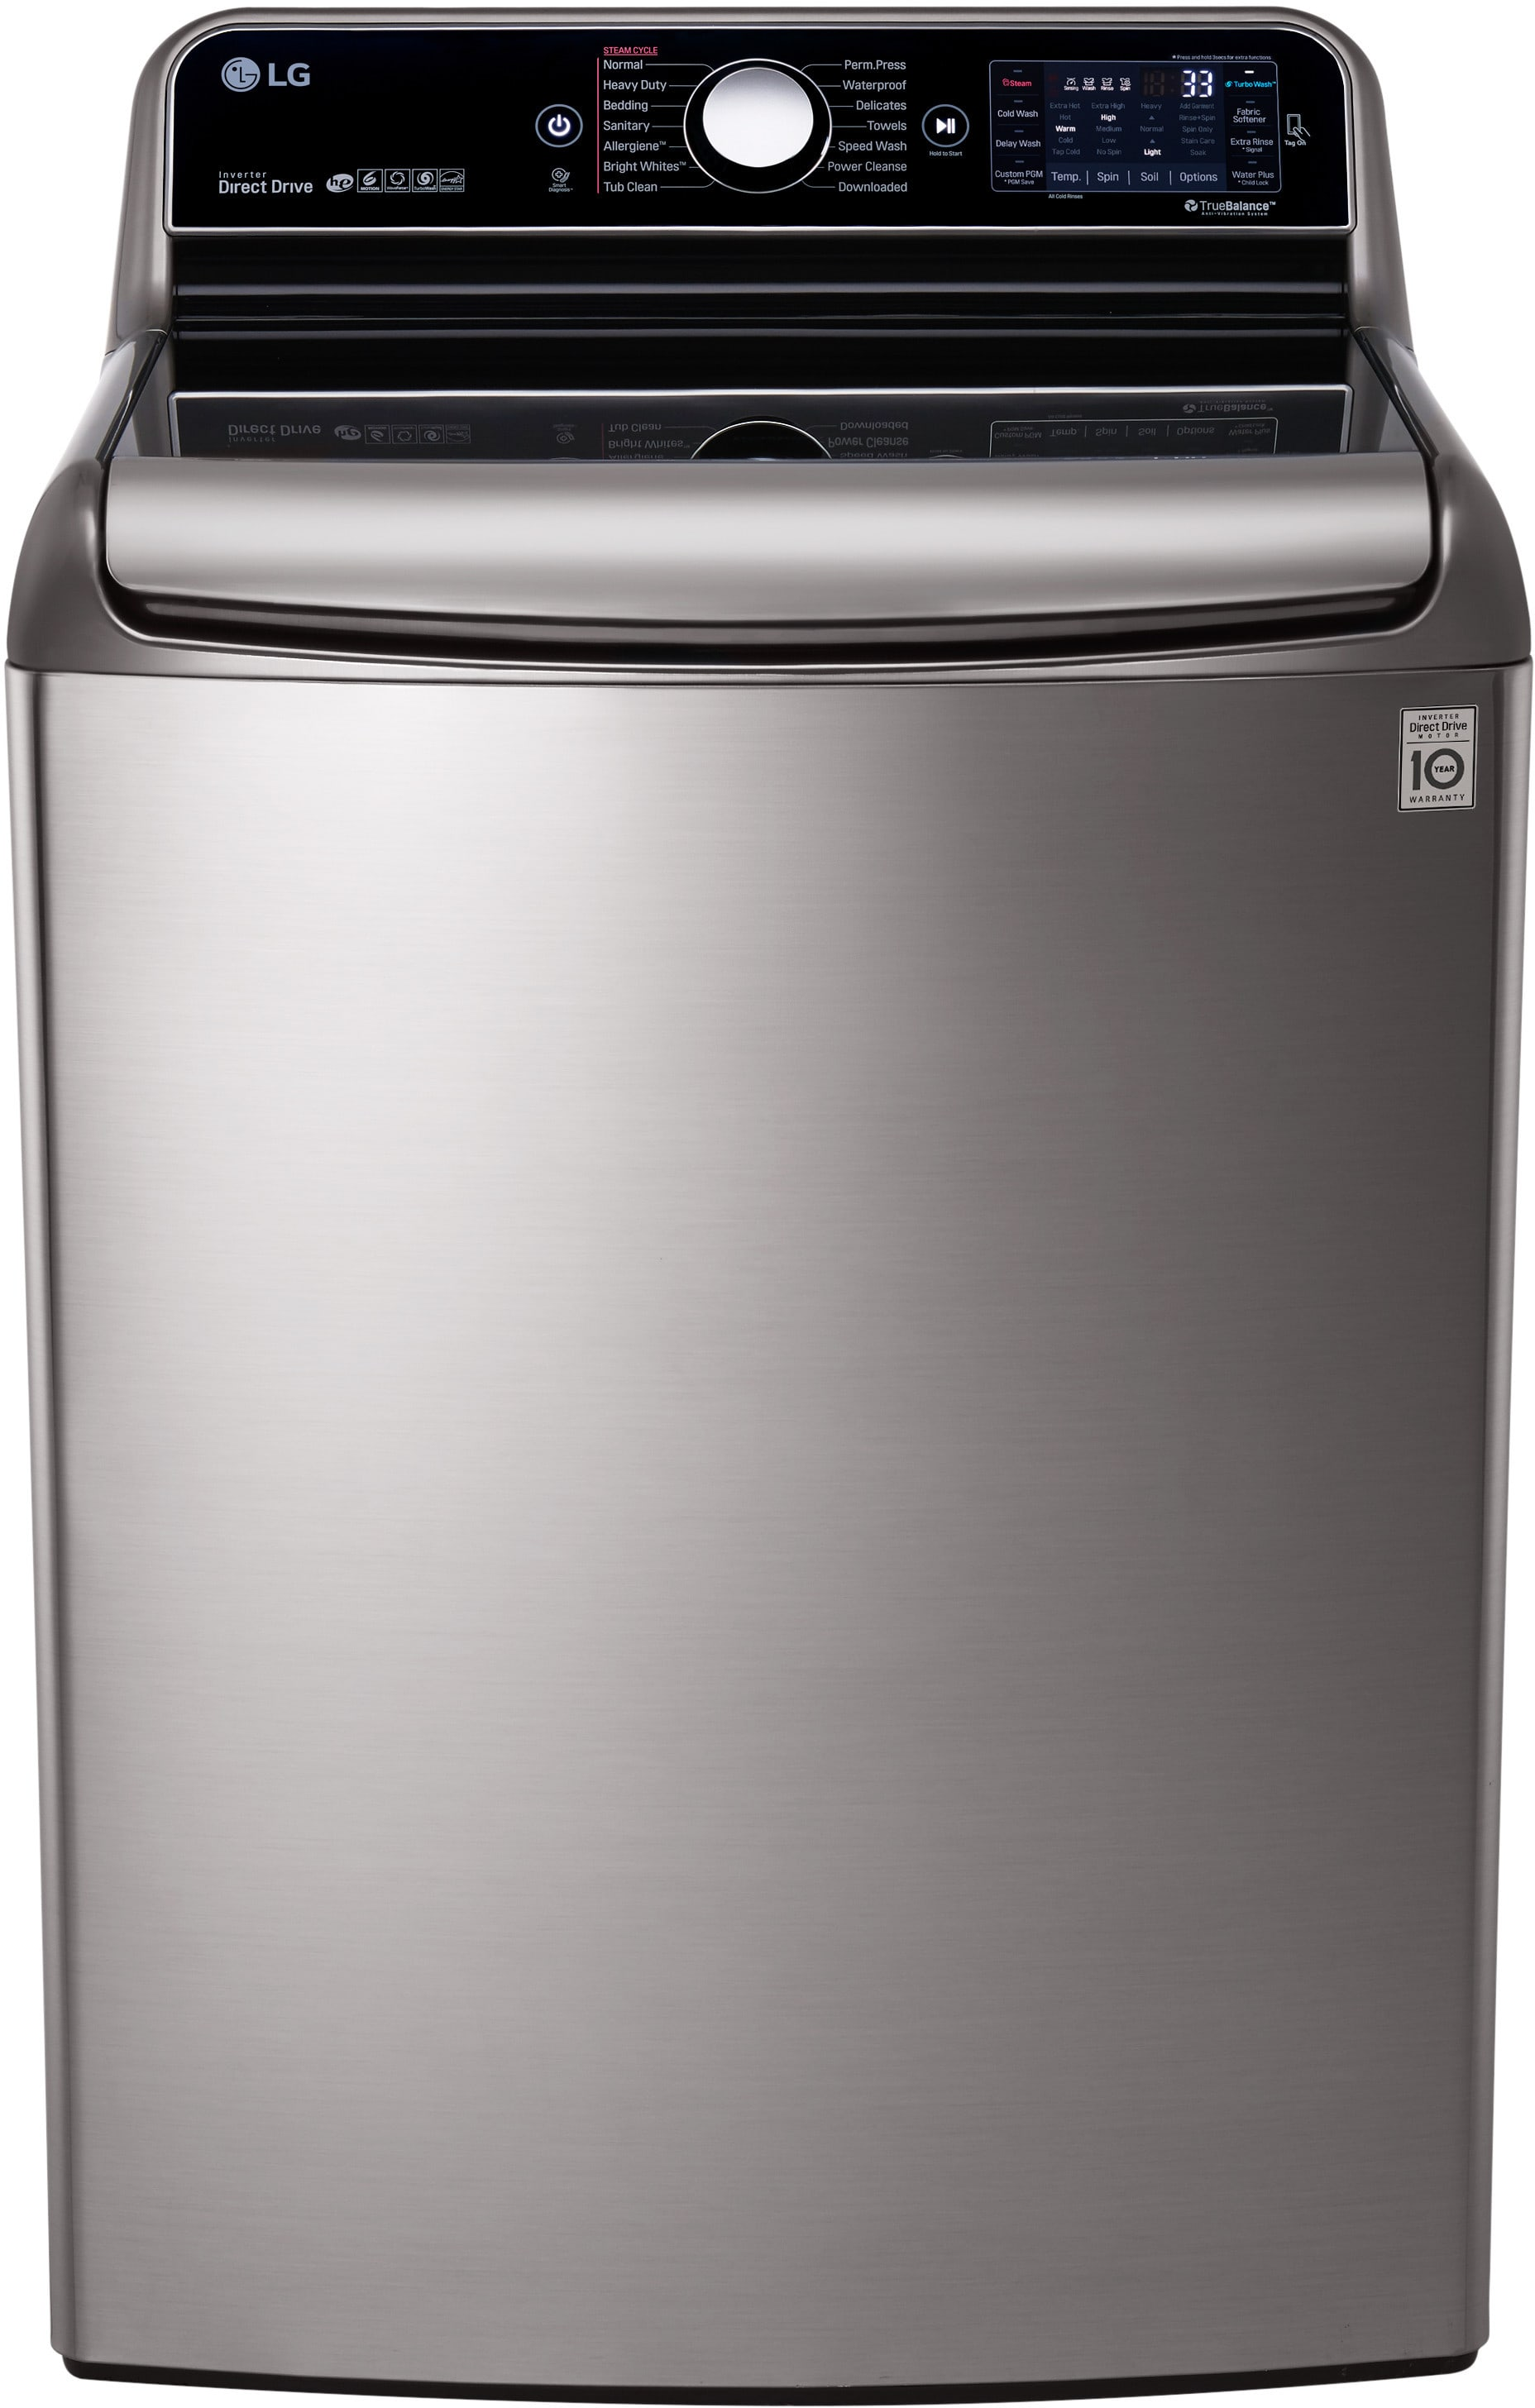 lg wt7700hva 29 inch 5 7 cu ft top load washer with 14 wash cycles